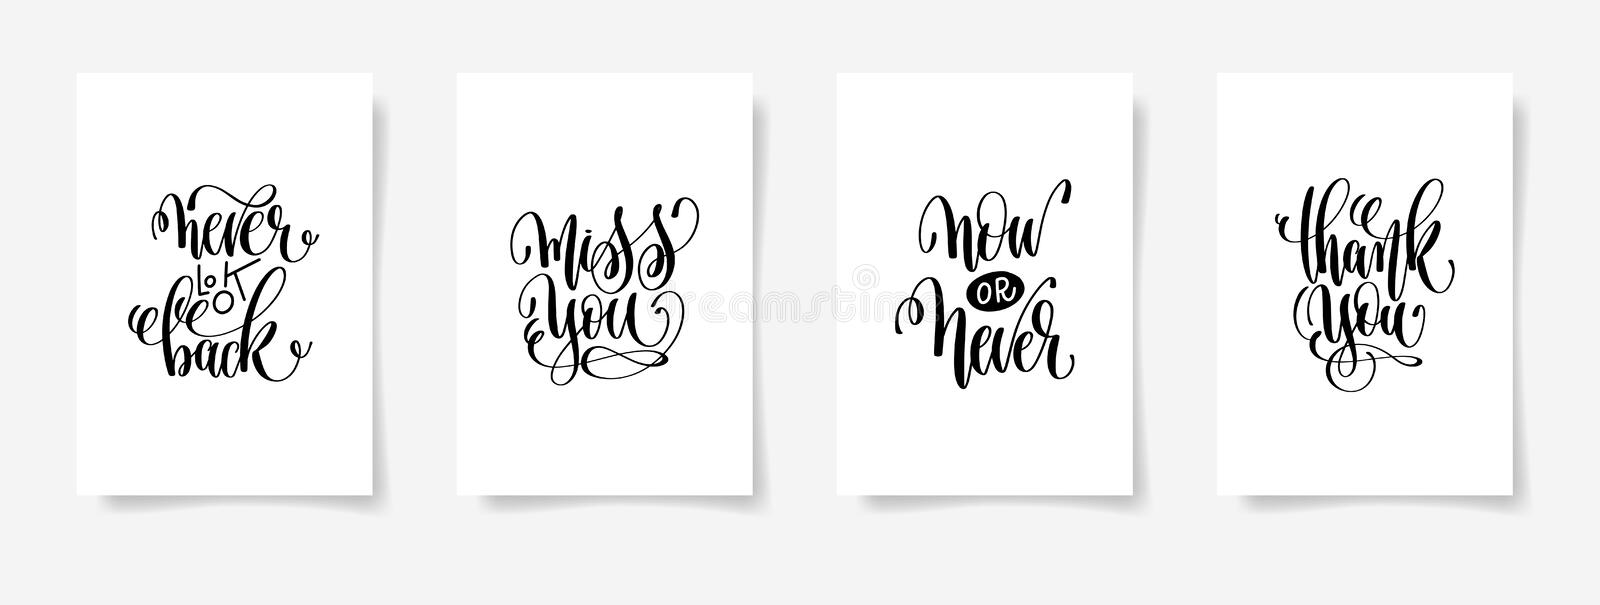 Never look back, miss you, now or never, thank you vector illustration